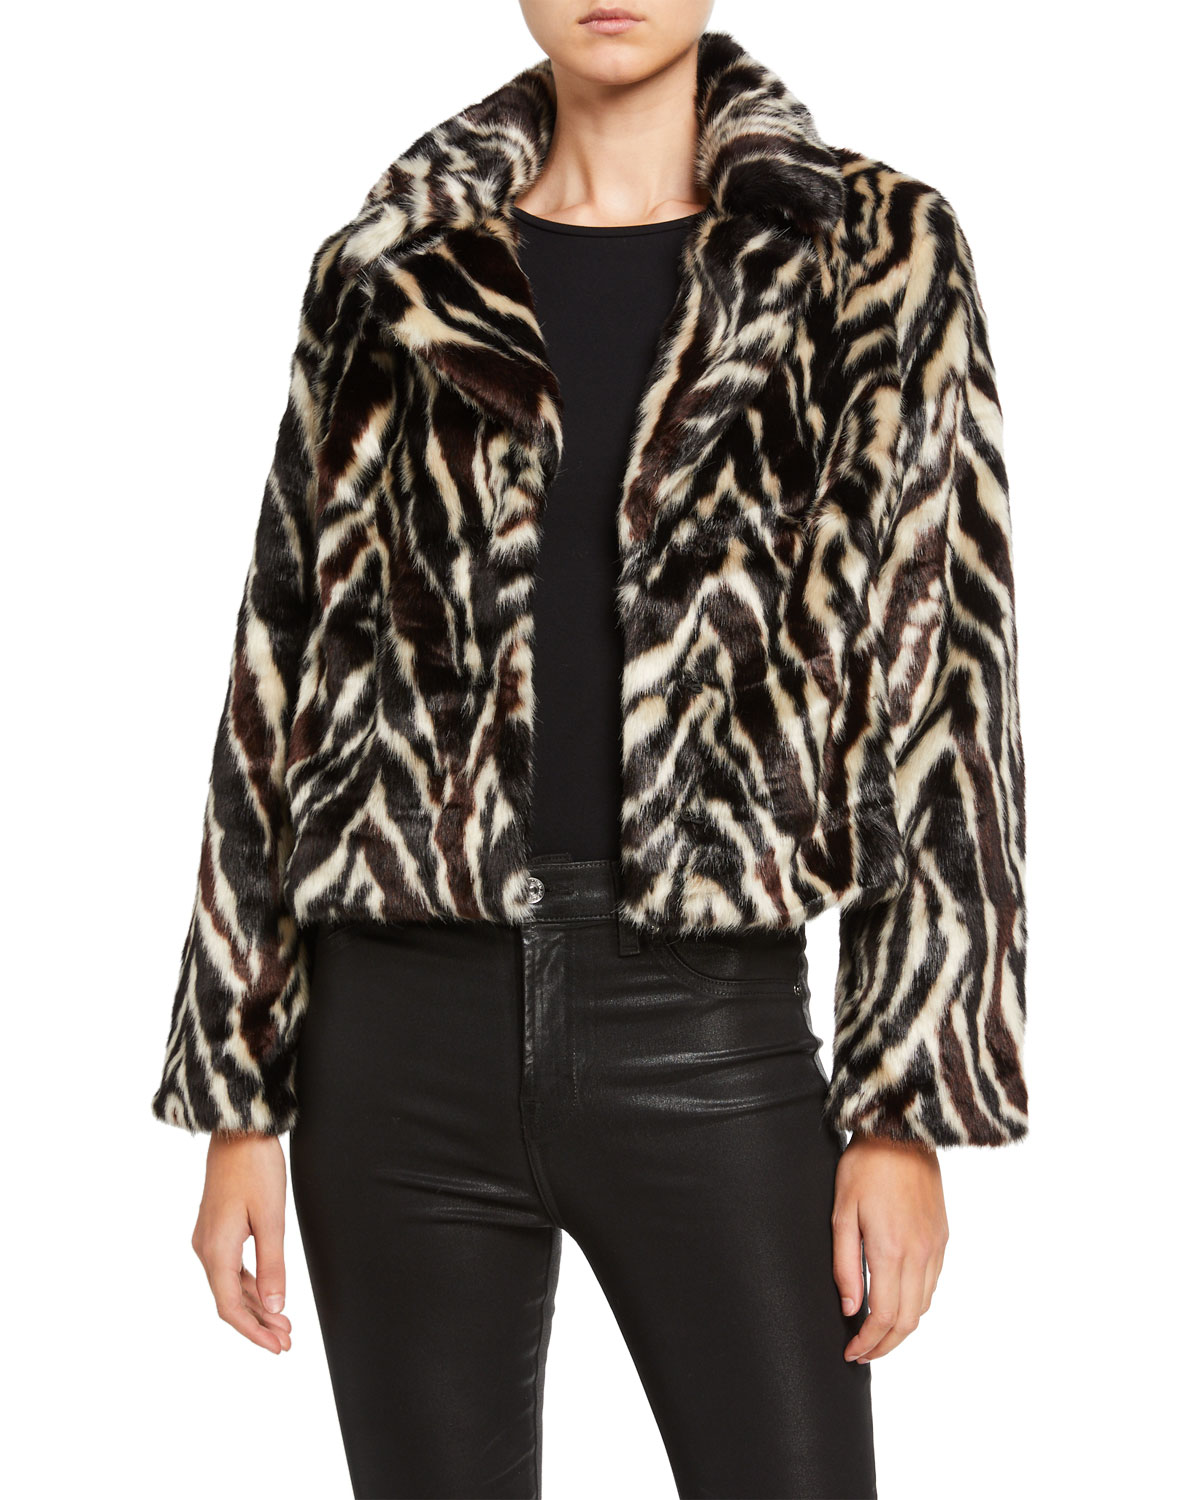 Zebra Print Faux Fur Jacket by 7 For All Mankind